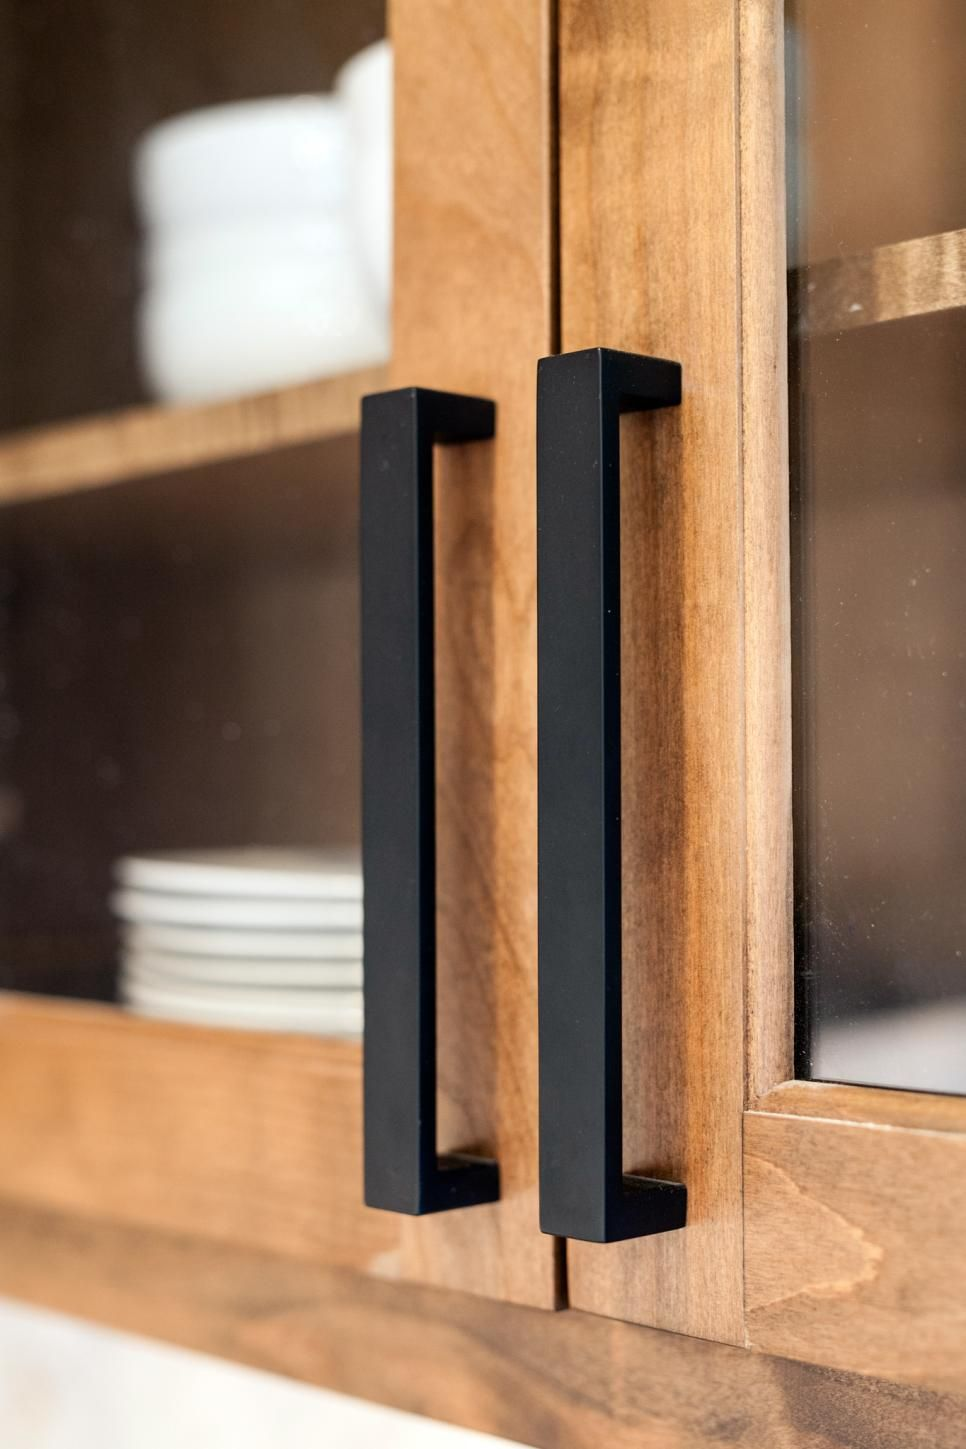 Fixer upper kitchen cabinet pulls - Fixer Upper A Family Home Resurrected In Rural Texas Kitchen Cabinet Hardwarecupboard Handlesblack